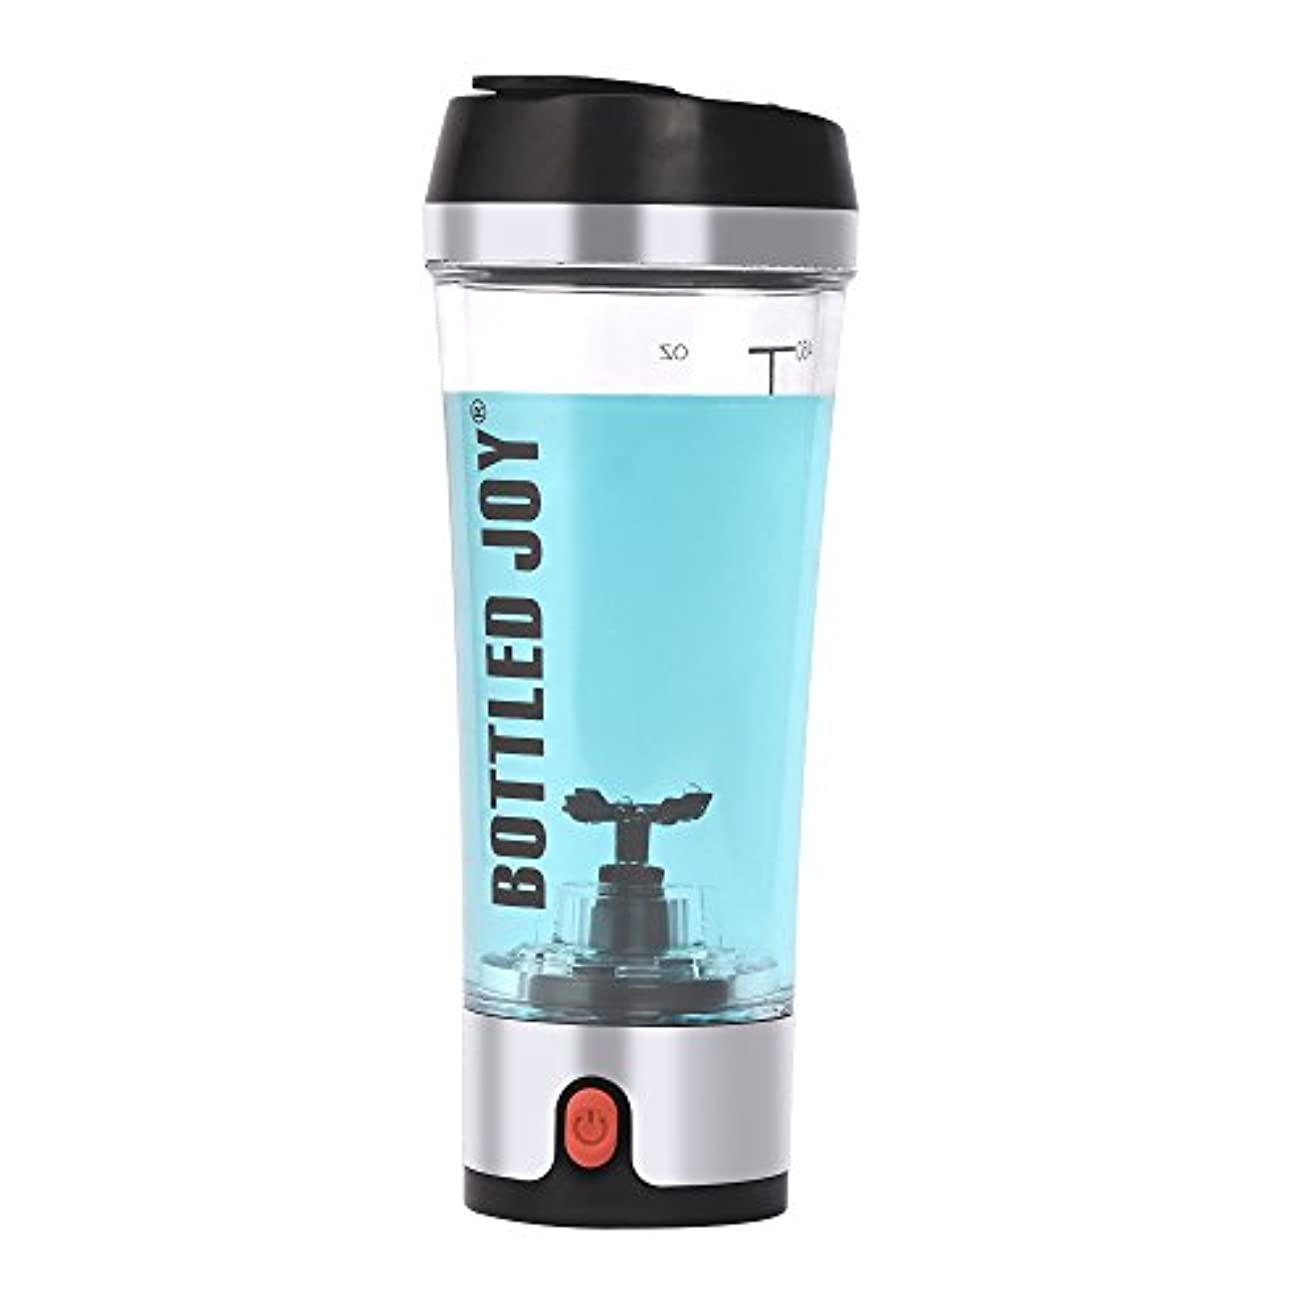 冷凍庫自己尊重ハードリングBottled Joy Electric Shaker Bottle、USB Rechargeable Protein Shaker、high-torque Stirring Blenderミキサーのスポーツマンと女性16oz...